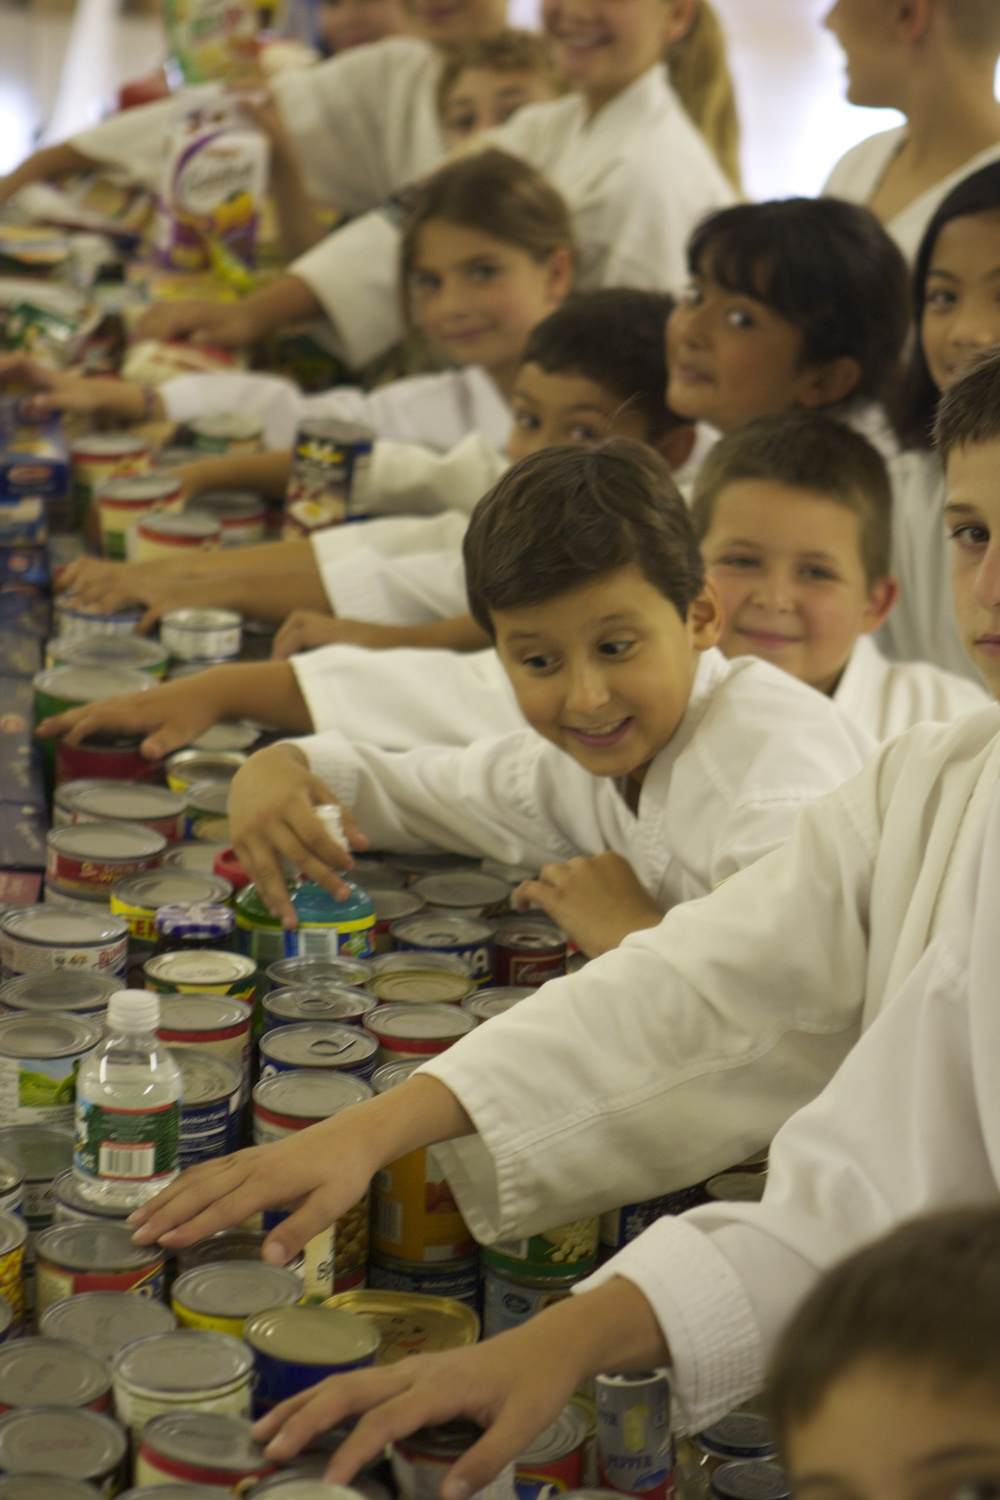 thedojo-food-drive-martial-arts-karate-kids-doing-community-service-in-rutherford-nj_14671110335_o.jpg